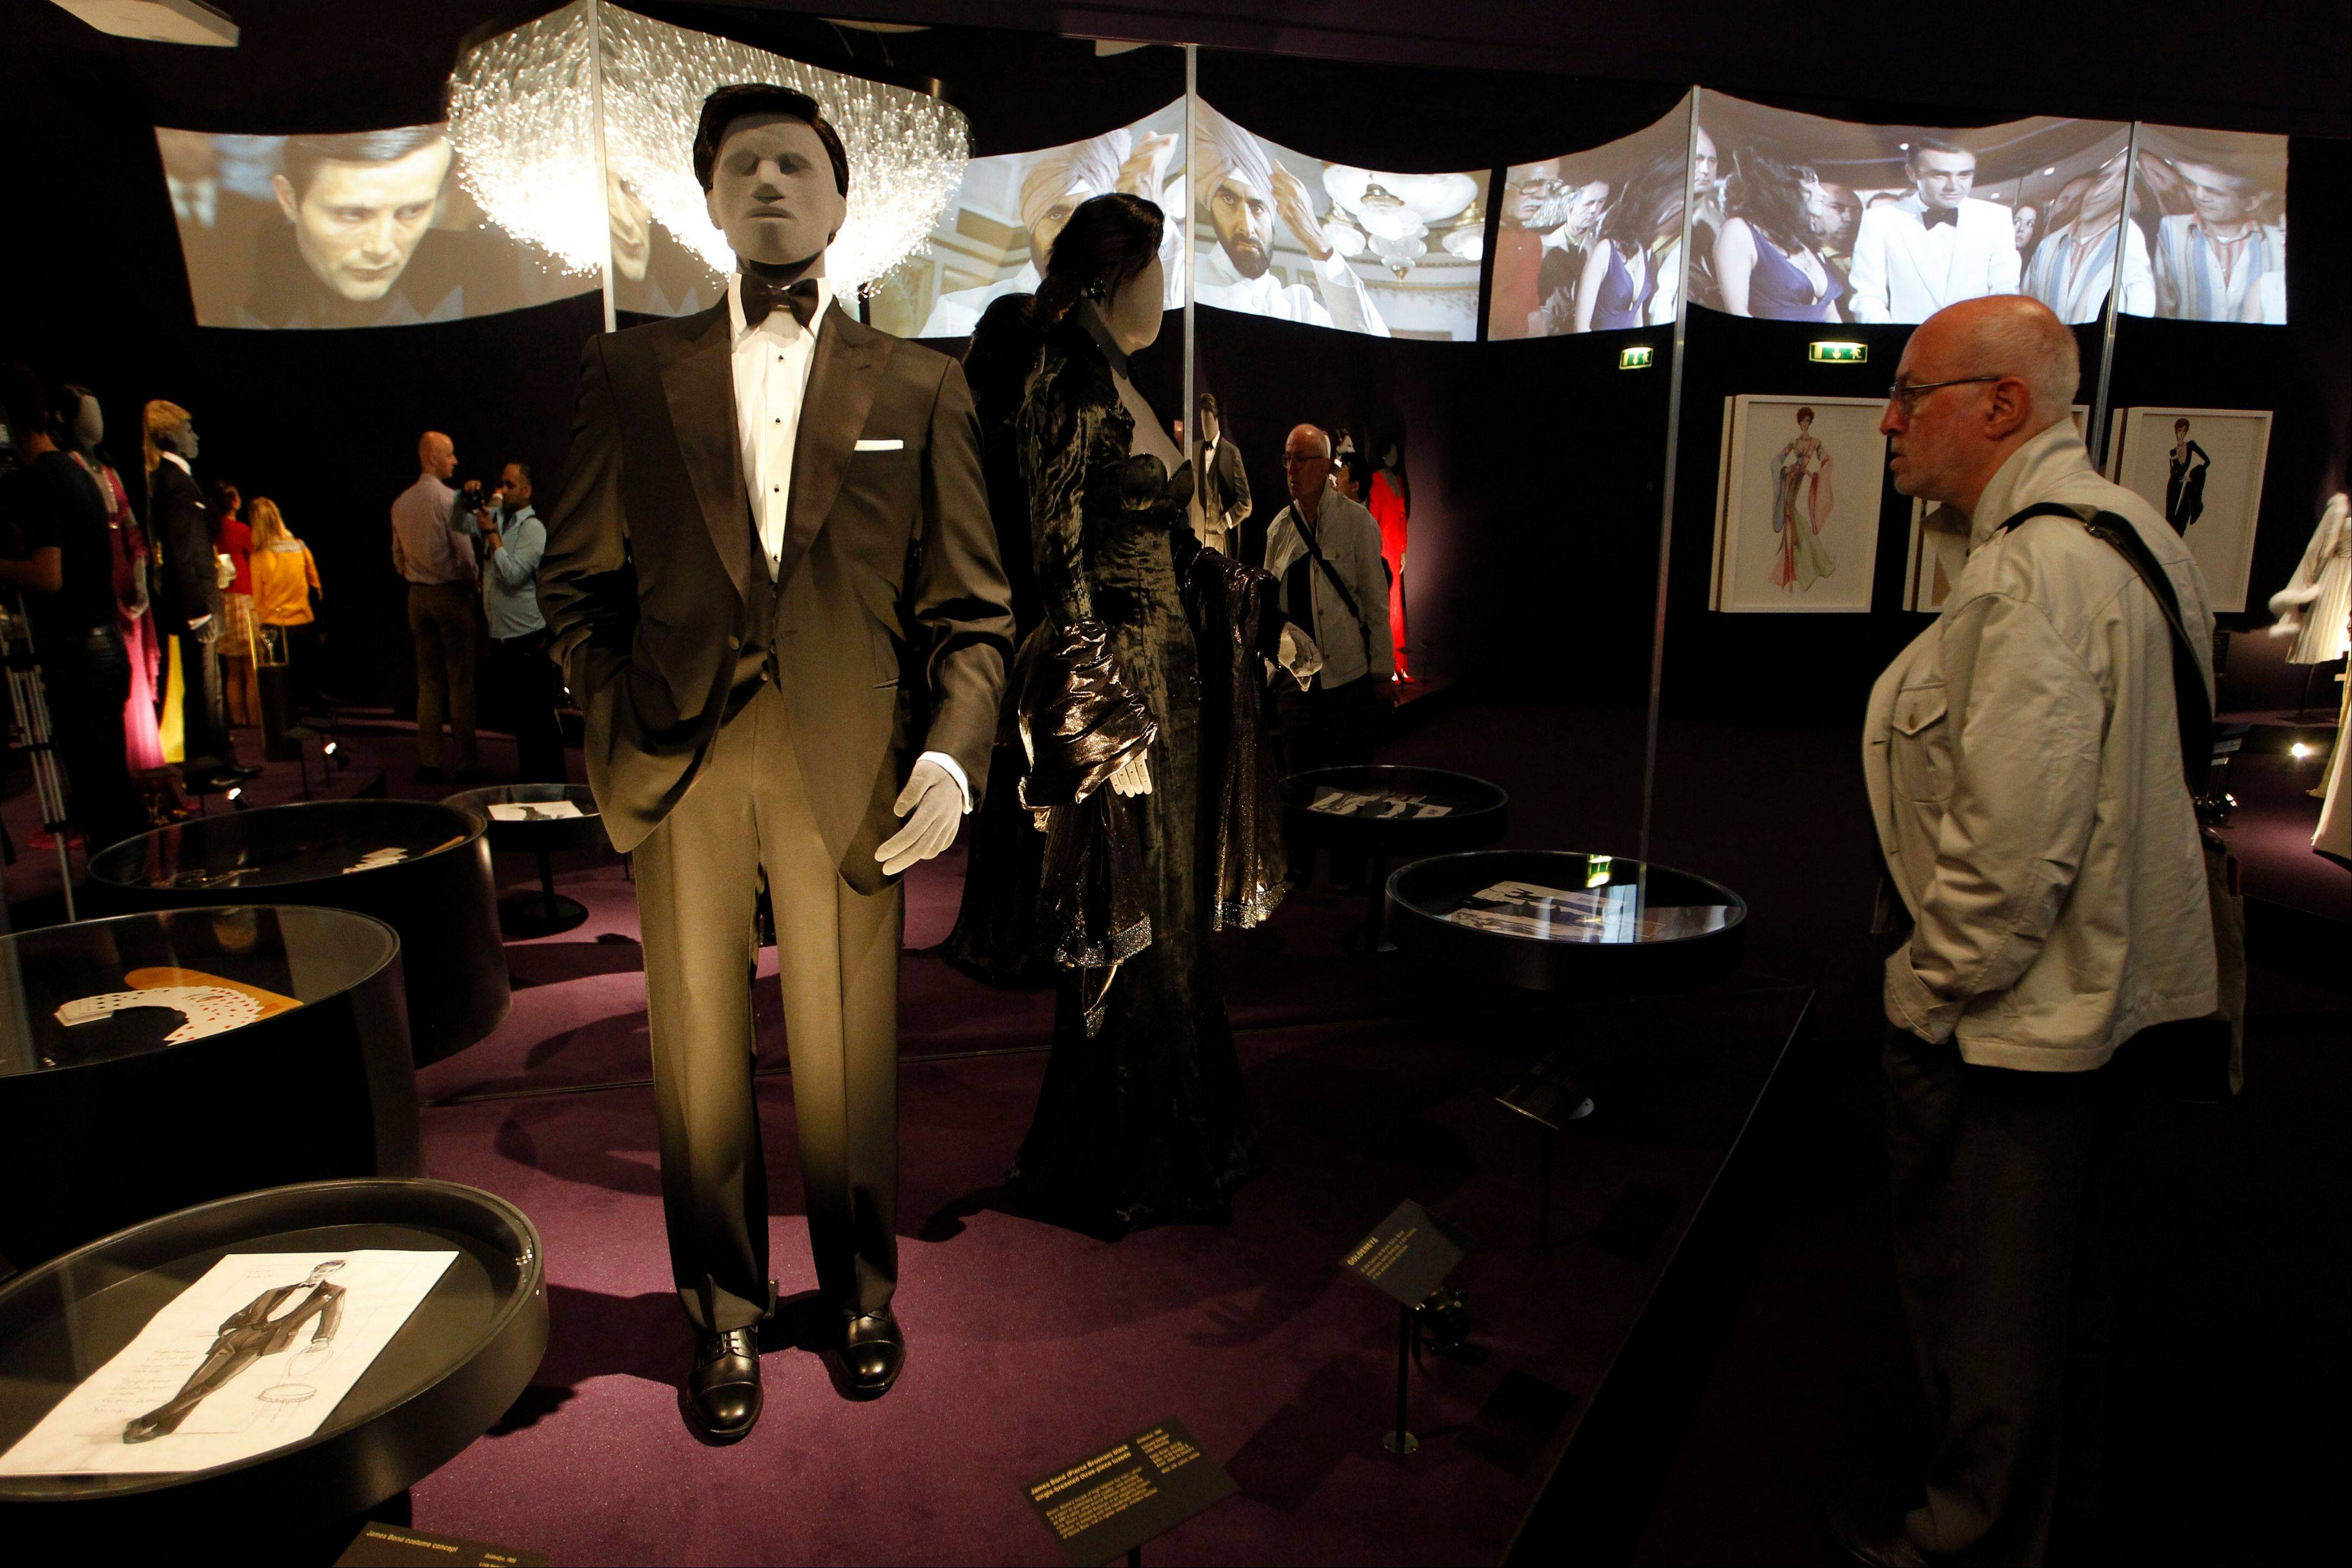 A visitor looks at a tuxedo worn by James Bond actor, Pierce Brosnan, in the film 'GoldenEye' on display in the exhibition 'Designing 007 - Fifty Years of Bond Style' at the Barbican centre in London.